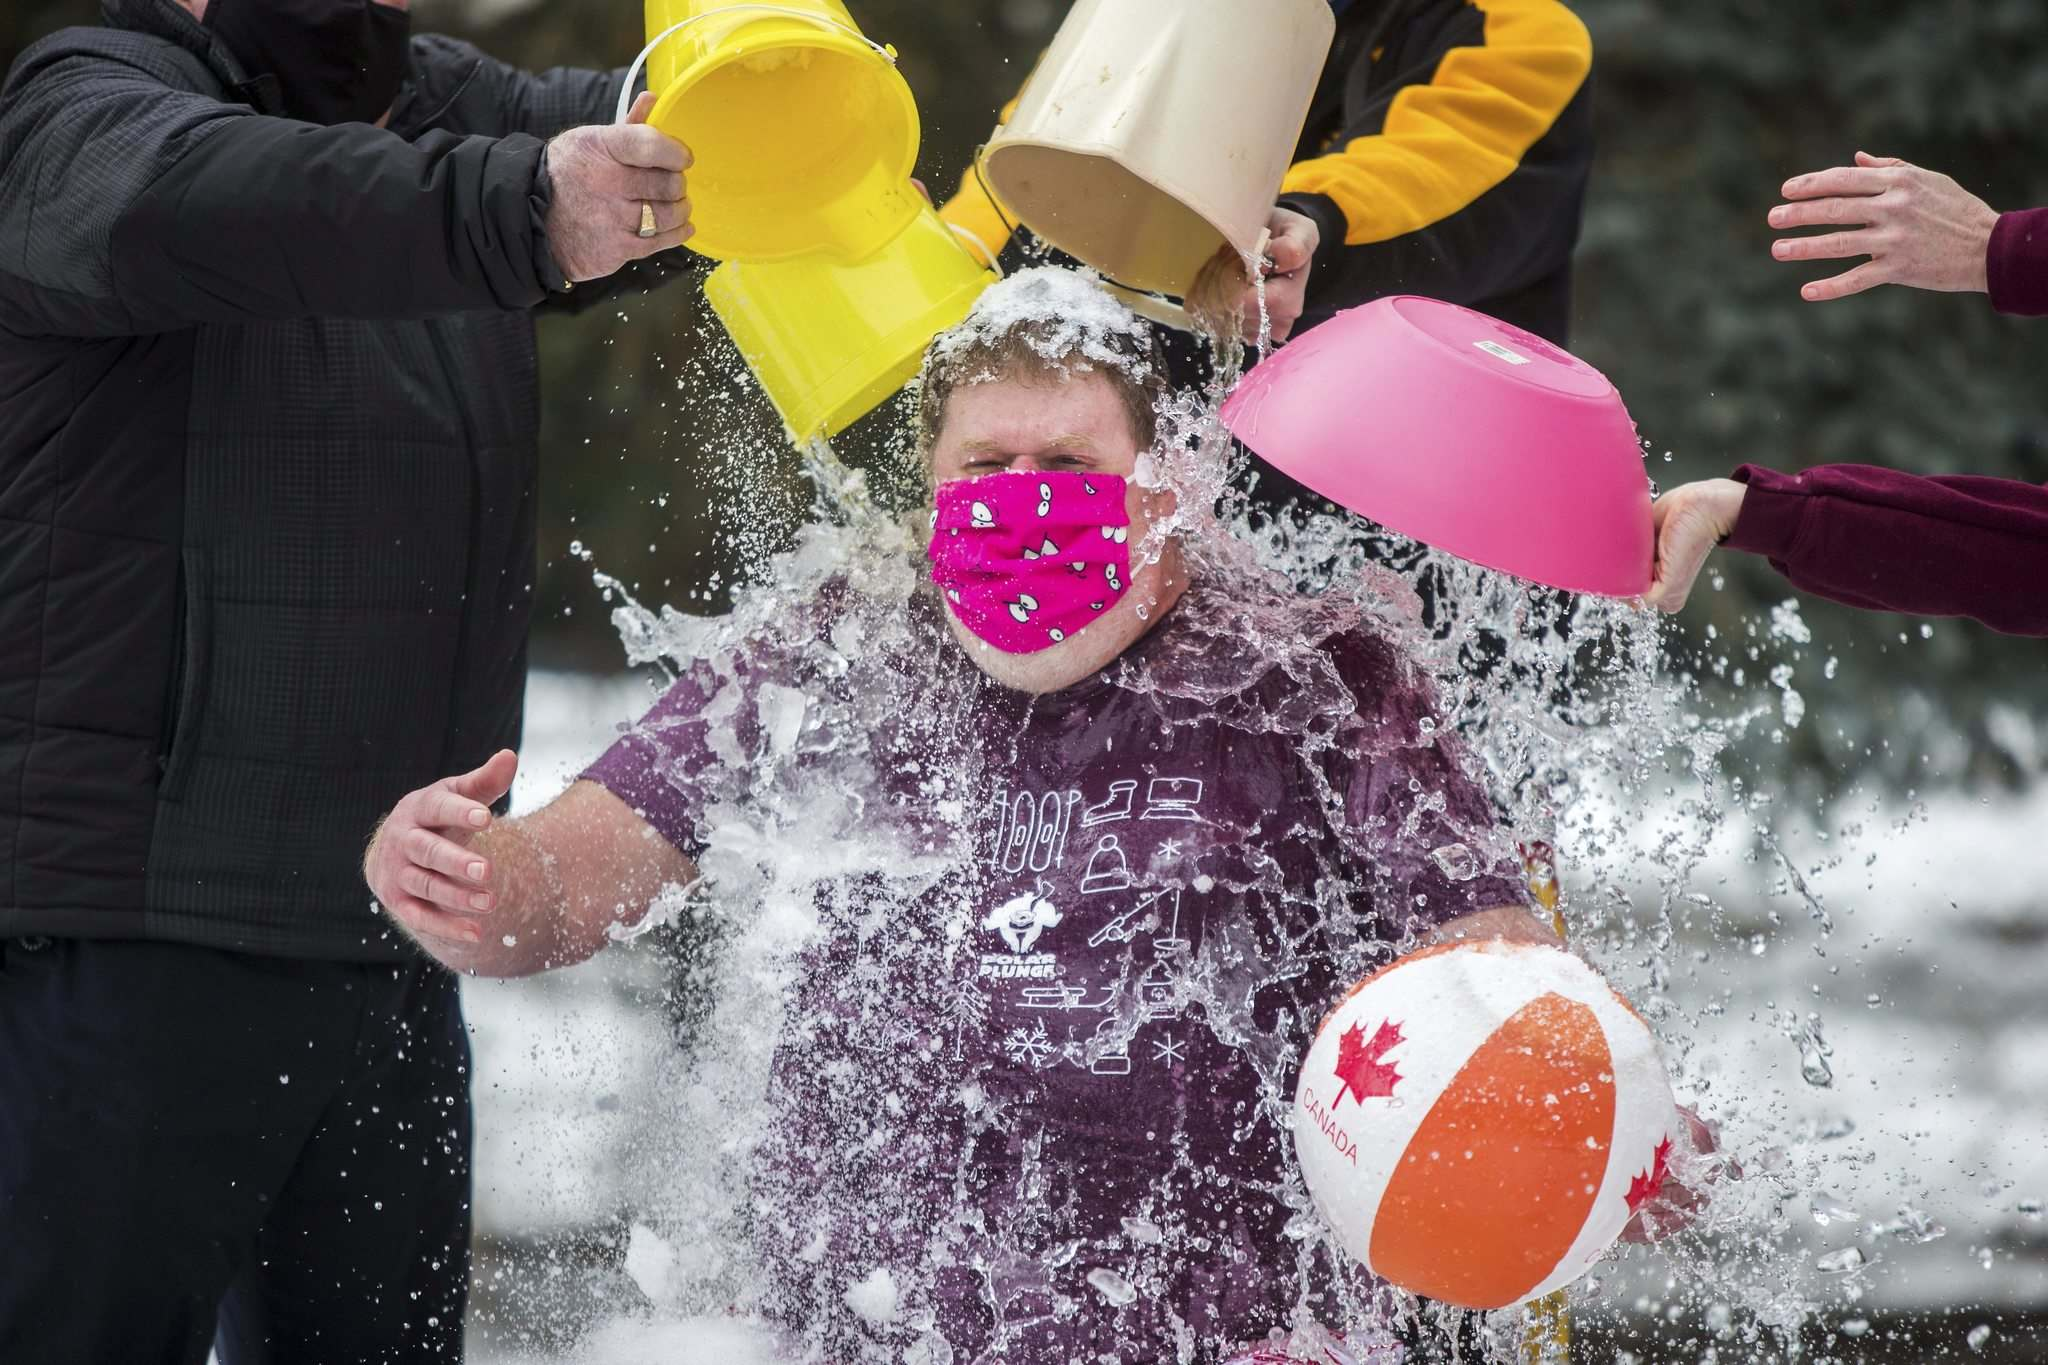 MIKAELA MACKENZIE / WINNIPEG FREE PRESS</p><p>Doug Speirs gets ice, water, and snow dumped on him by Special Olympics Manitoba fundraising manager Terry Hopkinson (left), Special Olympics Manitoba athlete Adam Lloyd, and CEO of Special Olympics Manitoba Jennifer Campbell as part of the Virtual Polar Plunge in his backyard in Winnipeg on Wednesday, Feb. 24, 2021. For Doug story.</p><p>Winnipeg Free Press 2021</p>